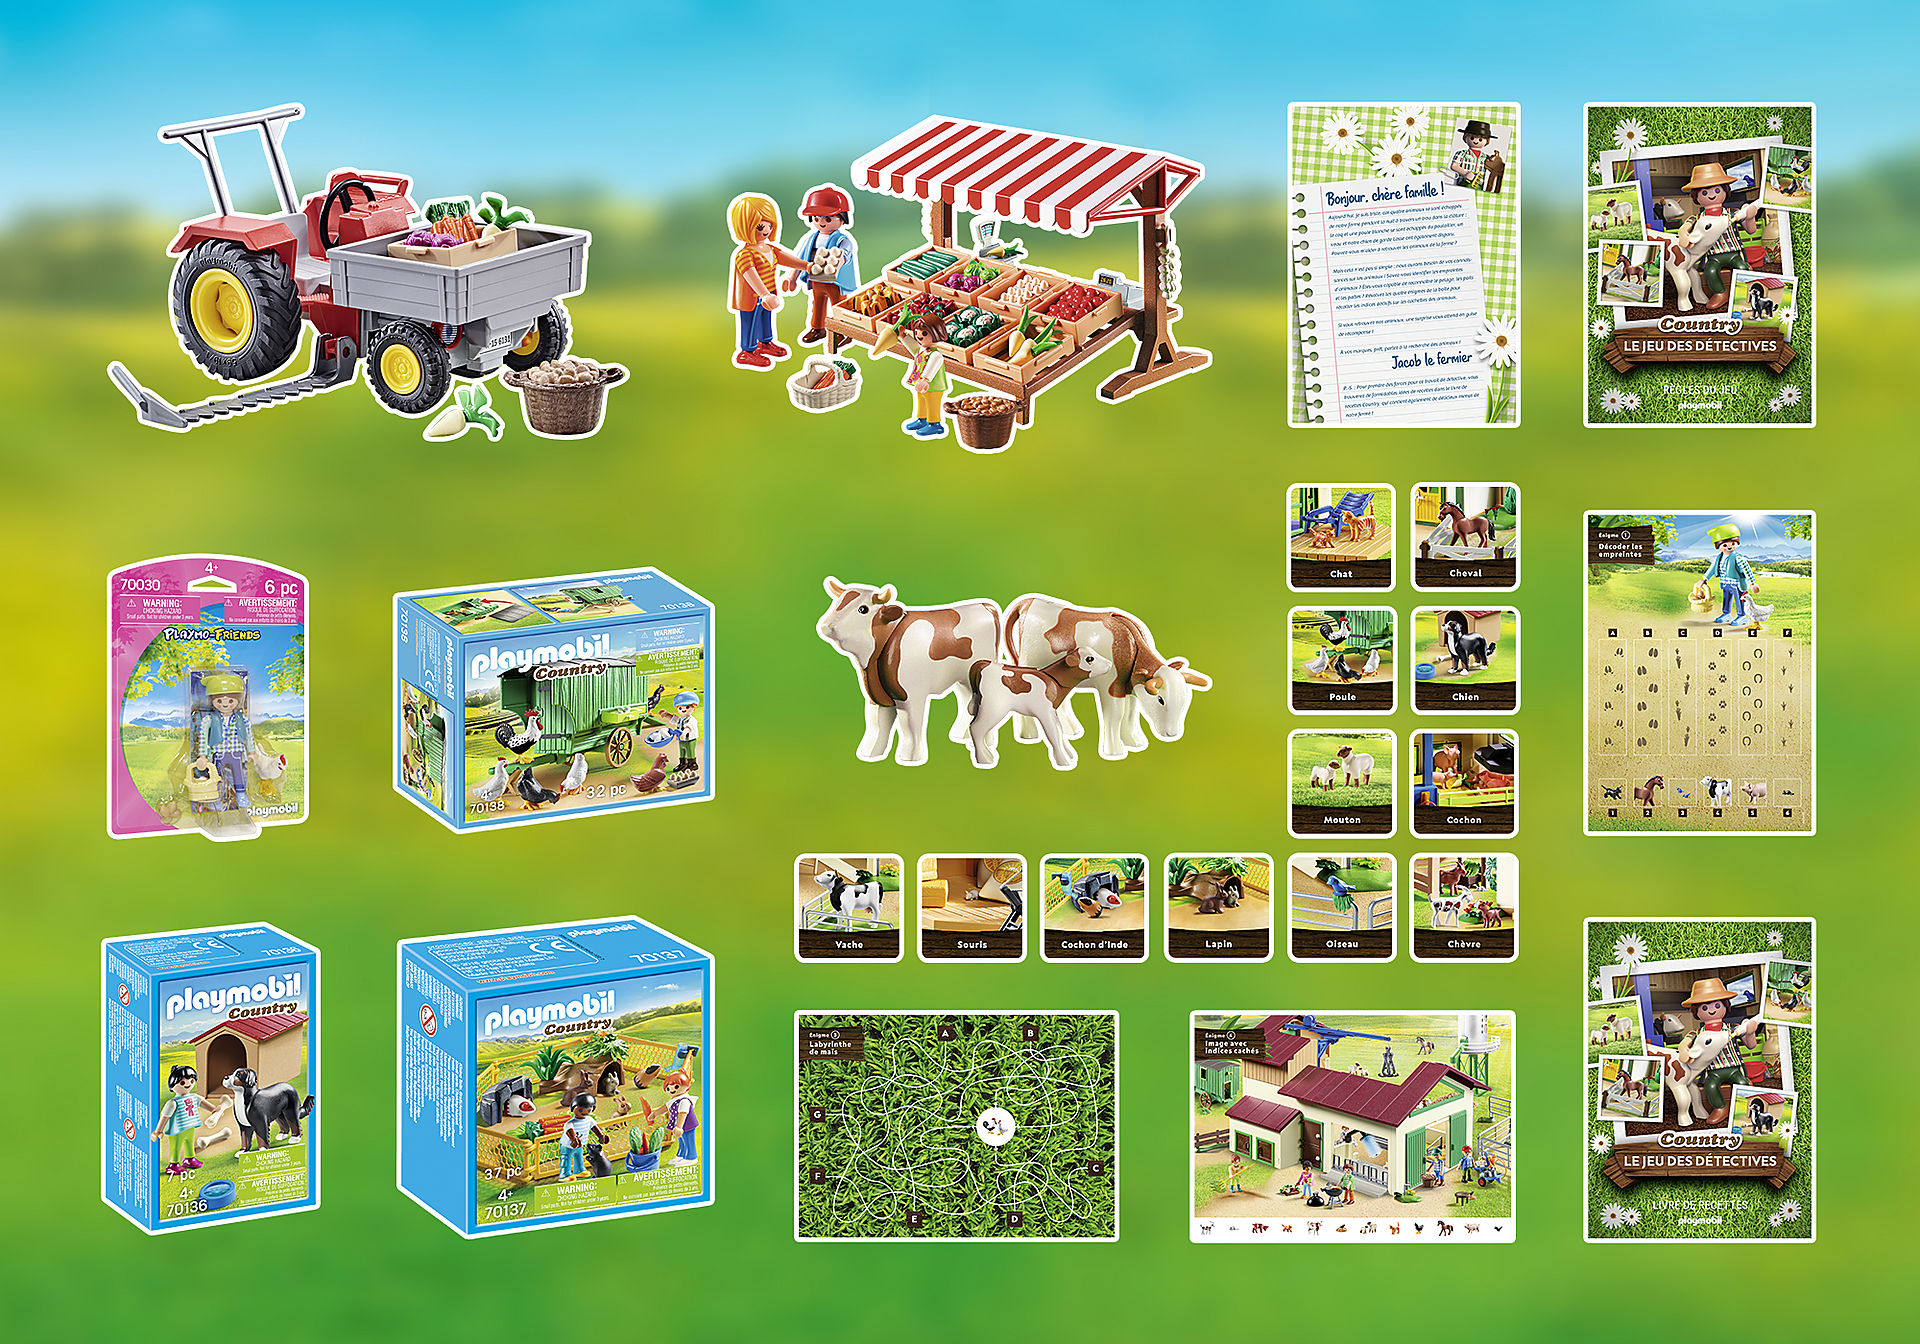 70852 Box PLAYMOBIL®: Le jeu de détective COUNTRY zoom image3